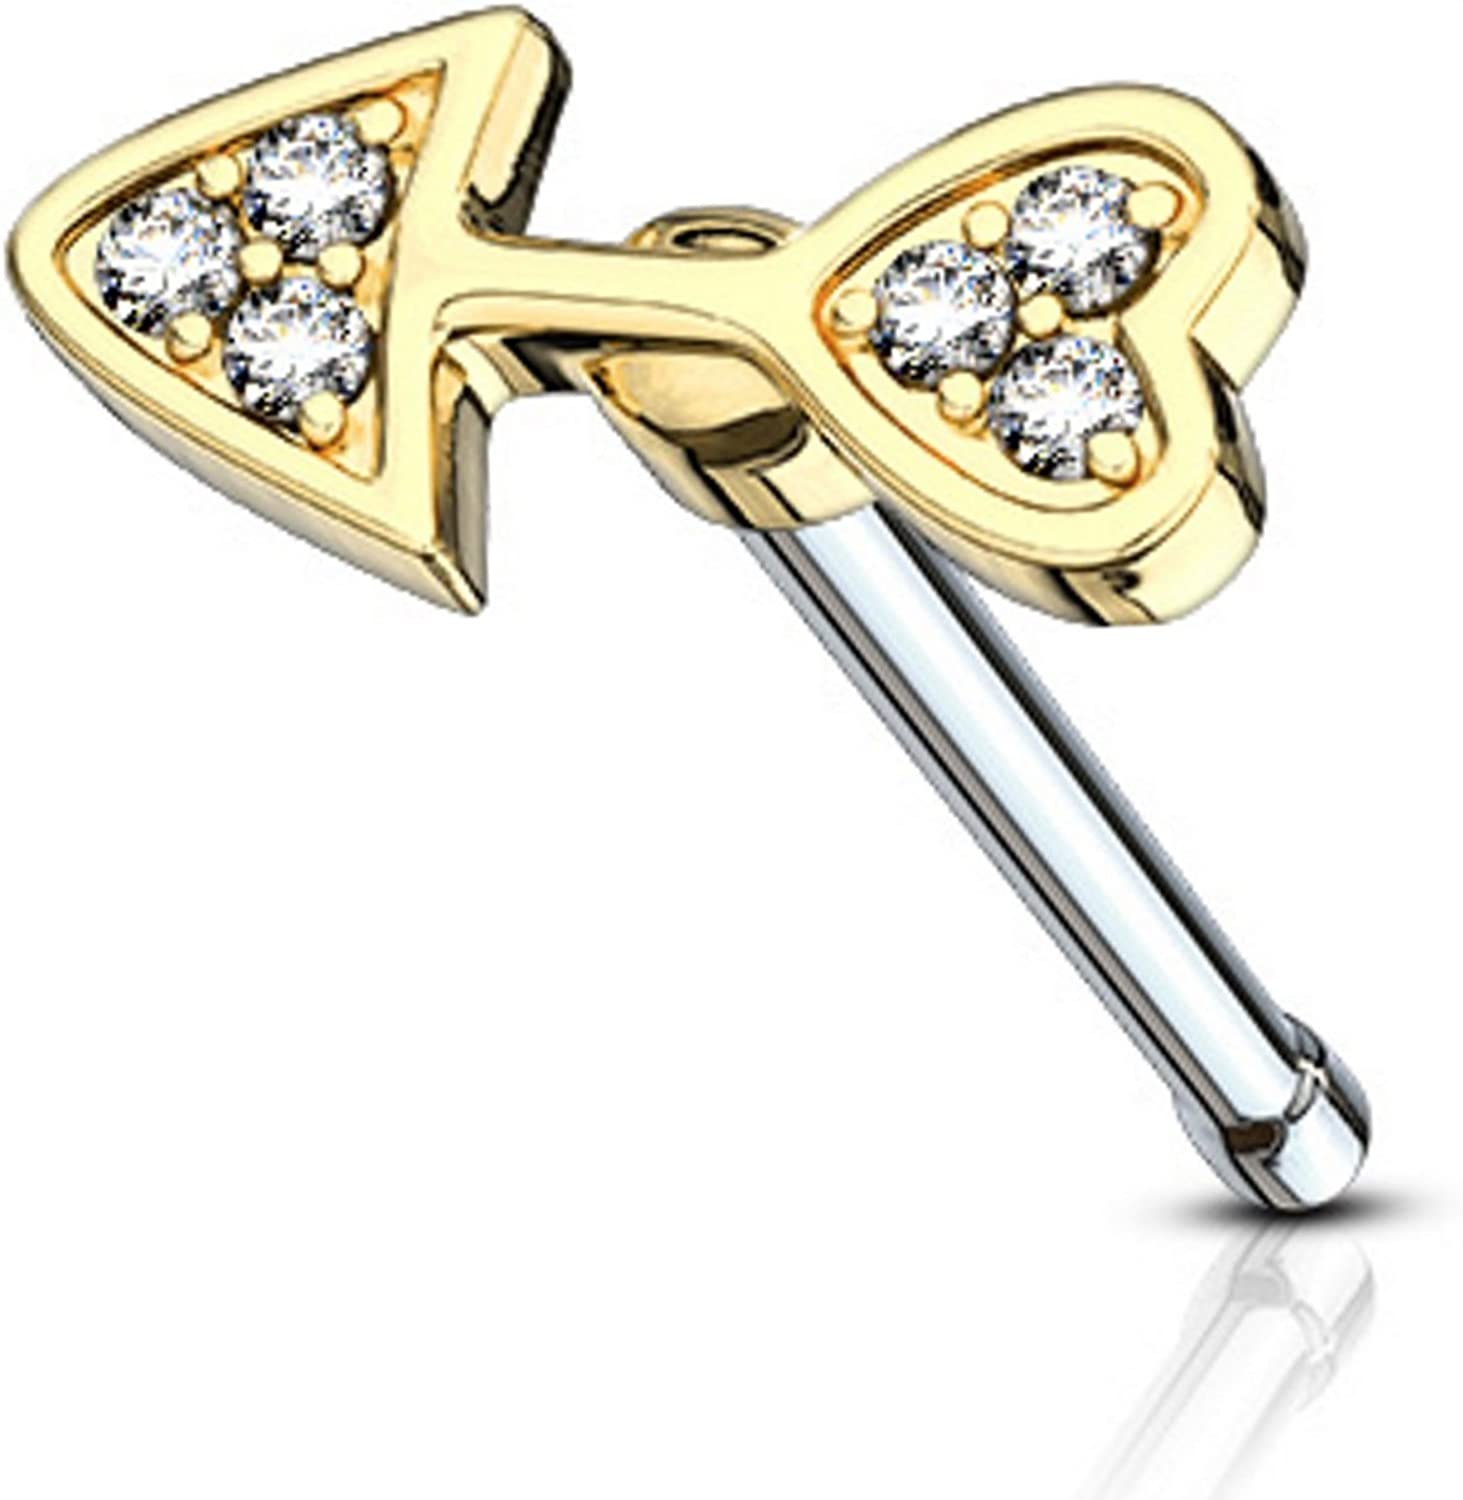 Gold Colored Arrow L-Shaped Nose Ring 0.8mm 20G - Sold as a Pair